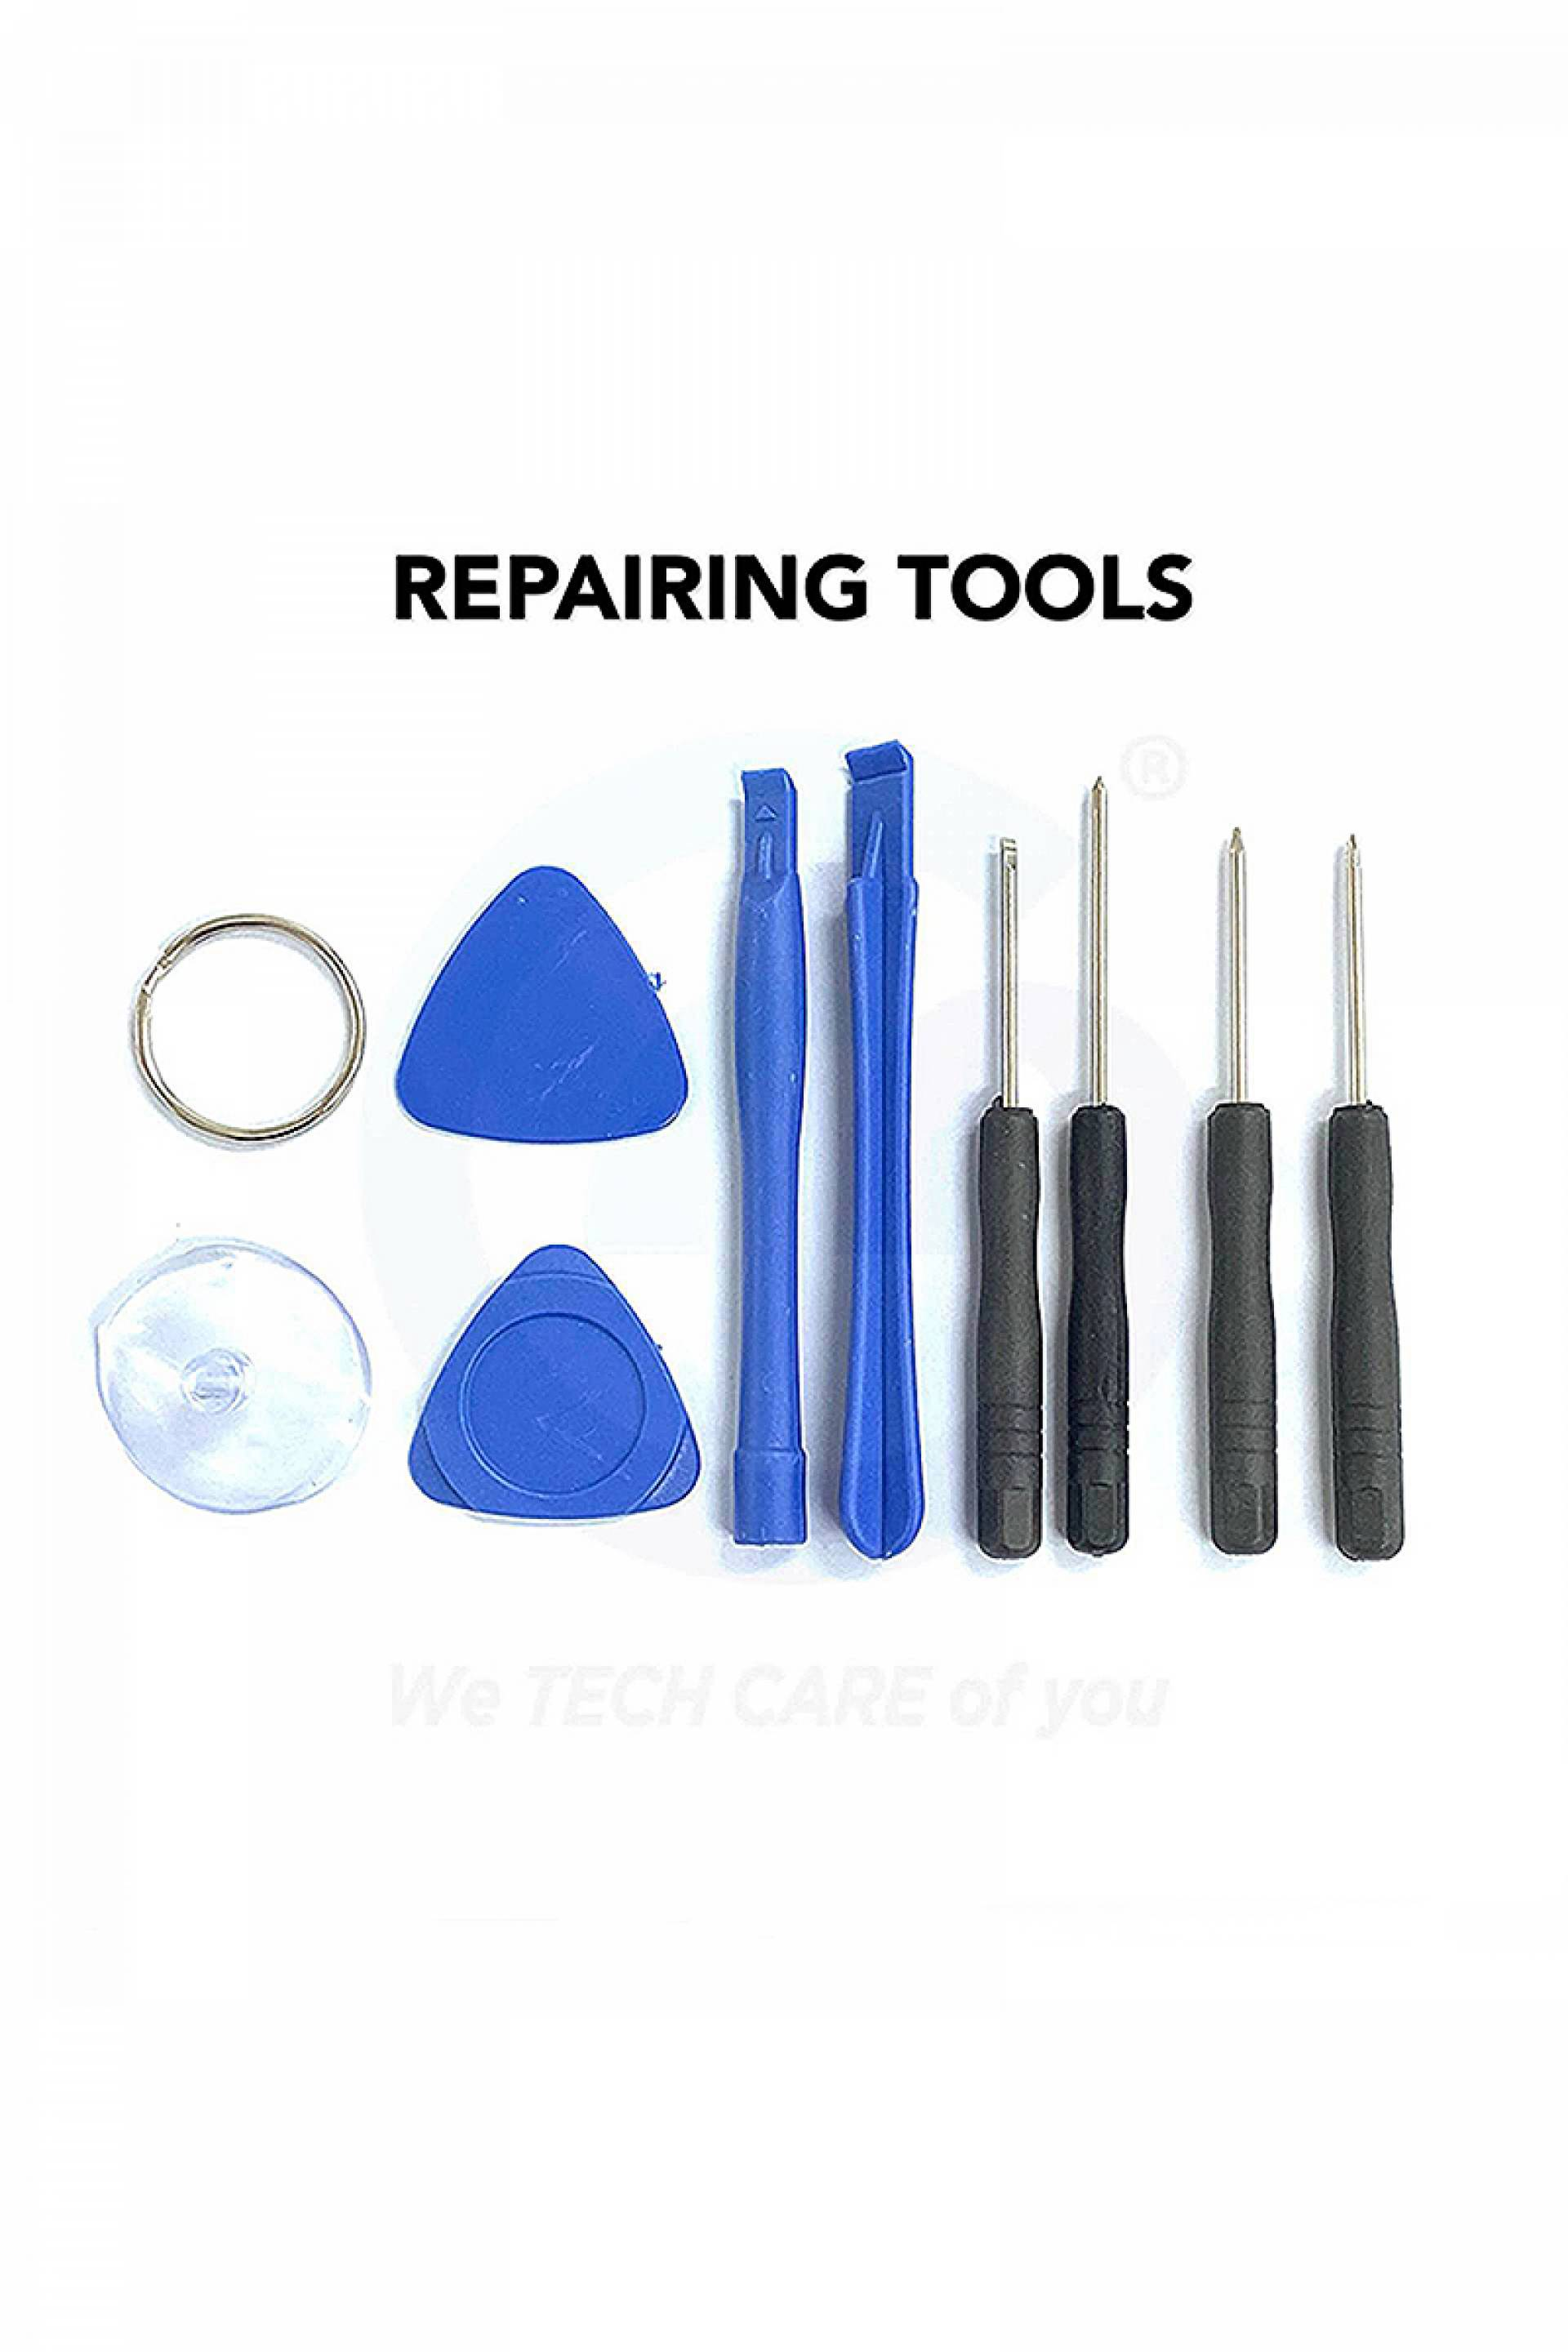 REPAIRING TOOLS & OTHERS